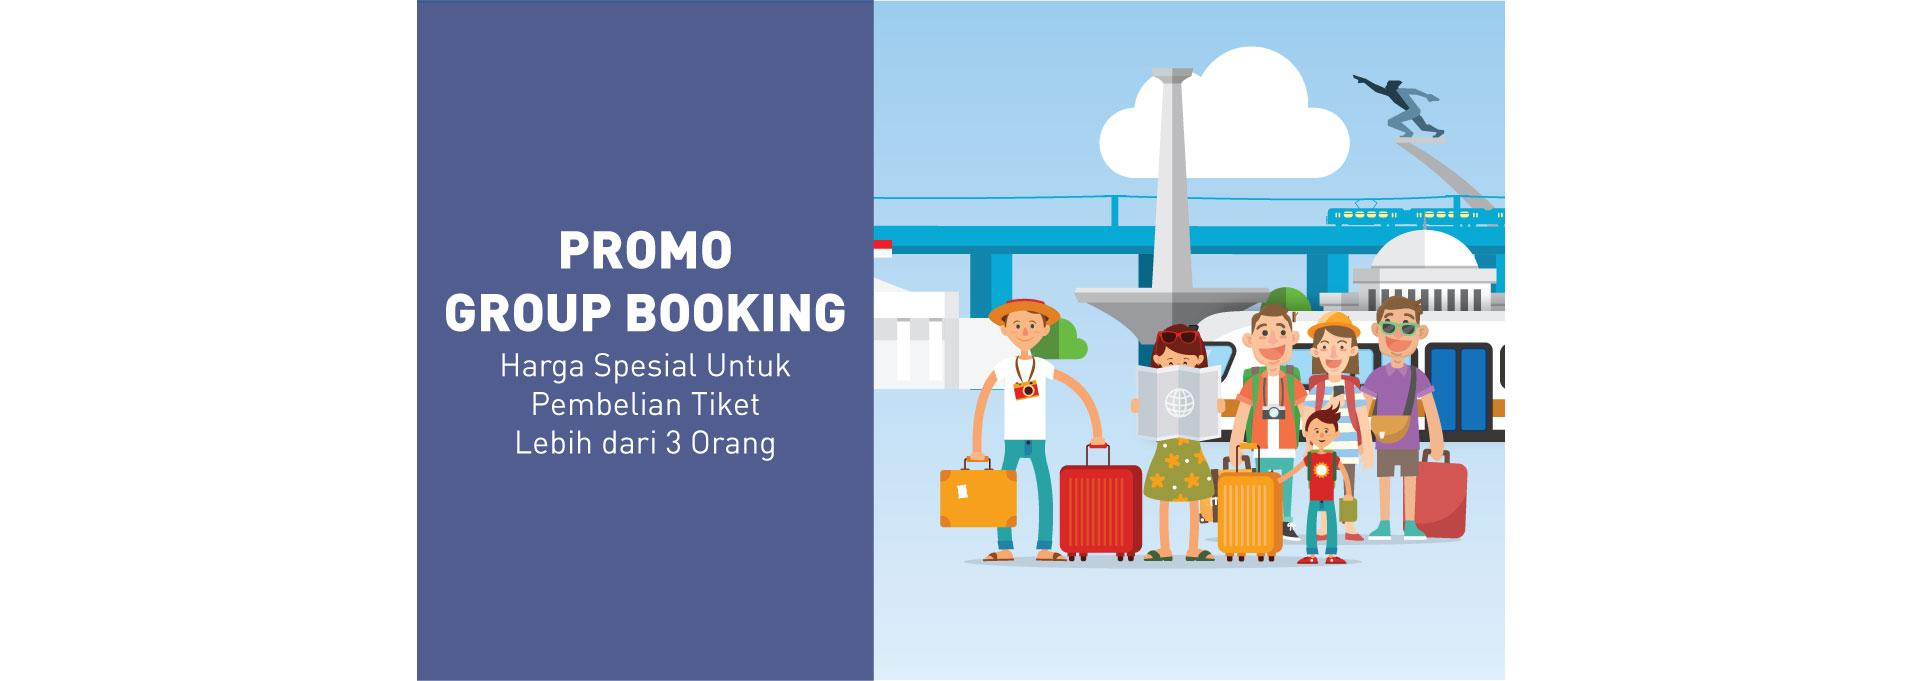 Group Booking Promo